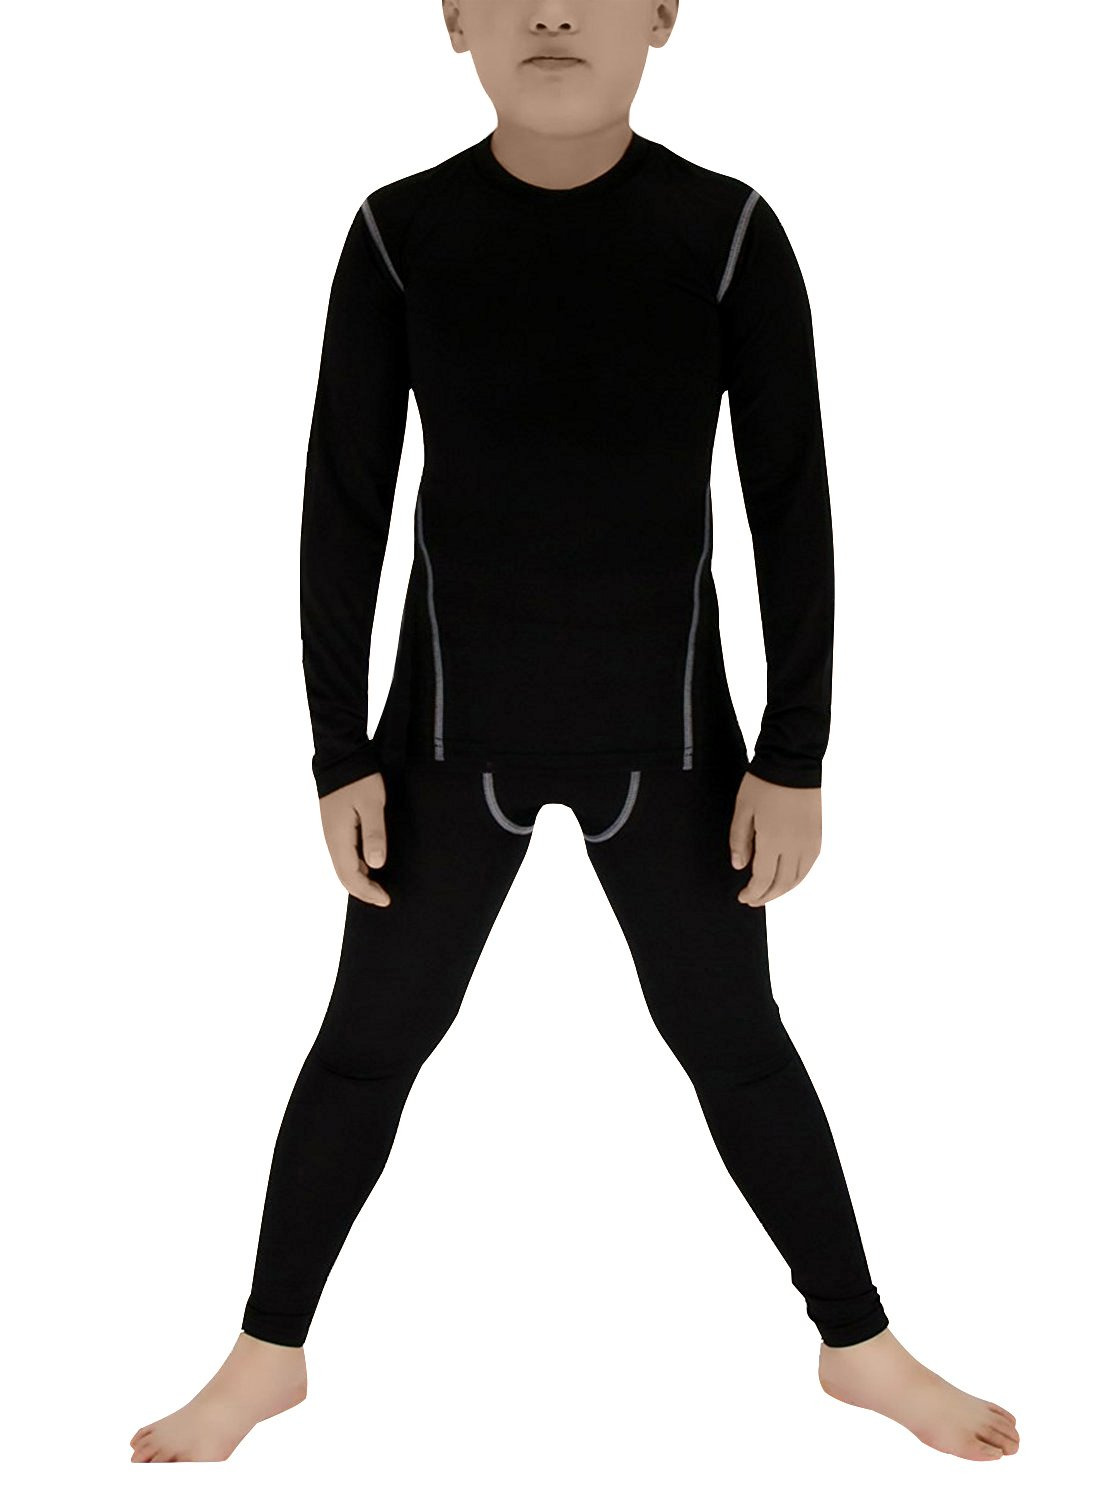 Boy's Thermal Underwear Set Long John Skin Base Layer Tops and Bottom Moisture Wicking(14 Black) by Minghe